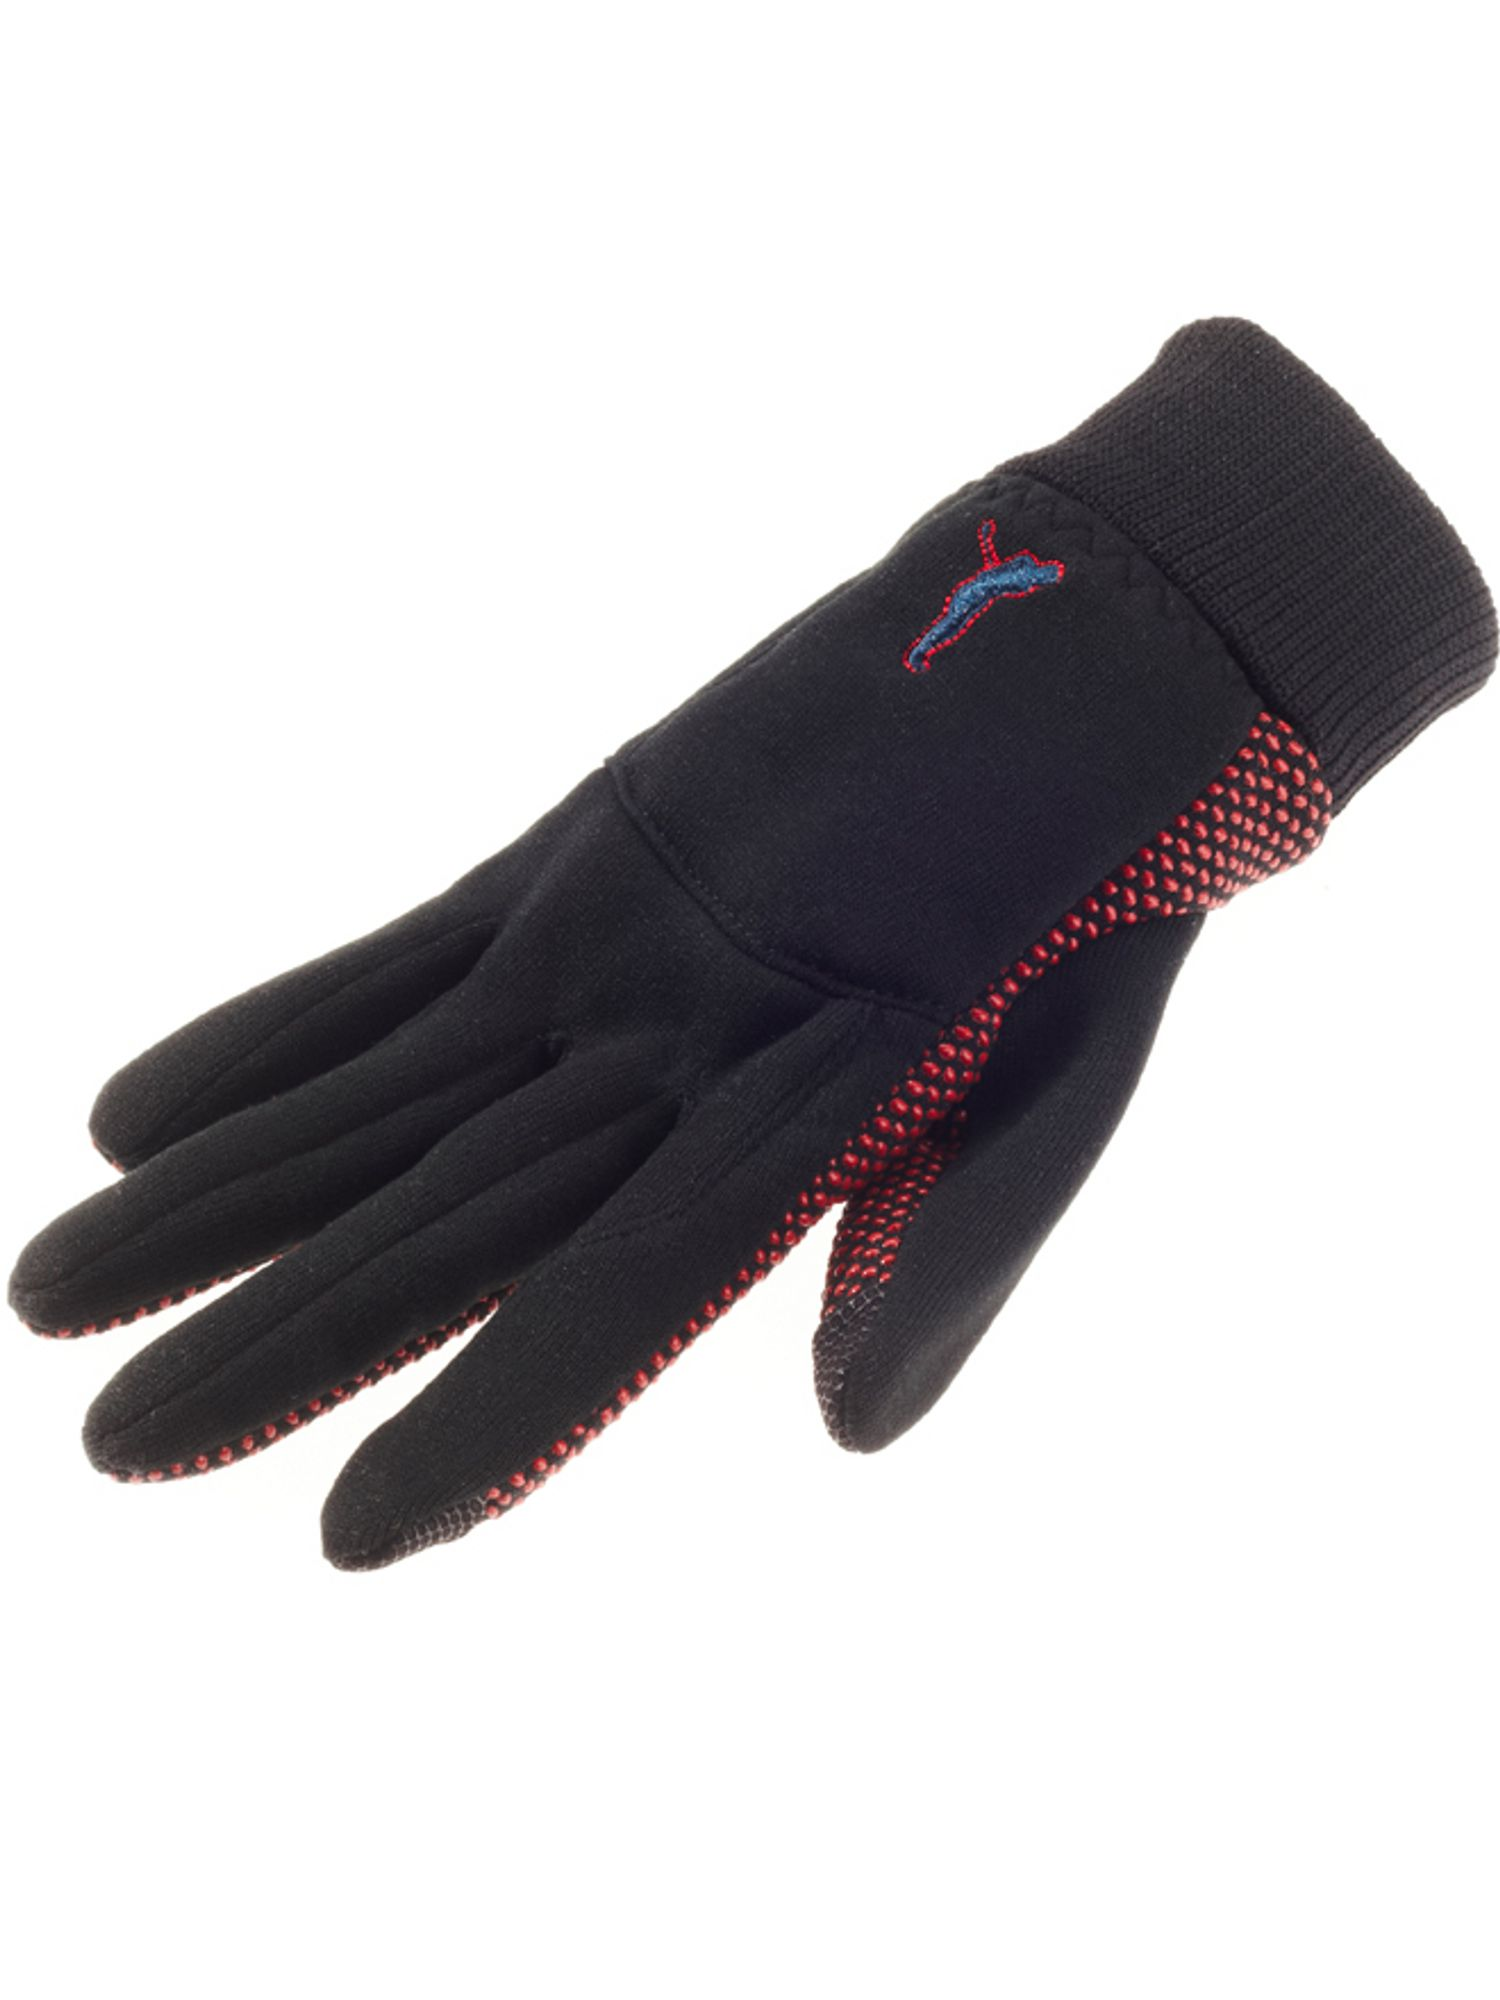 Functional winter gloves